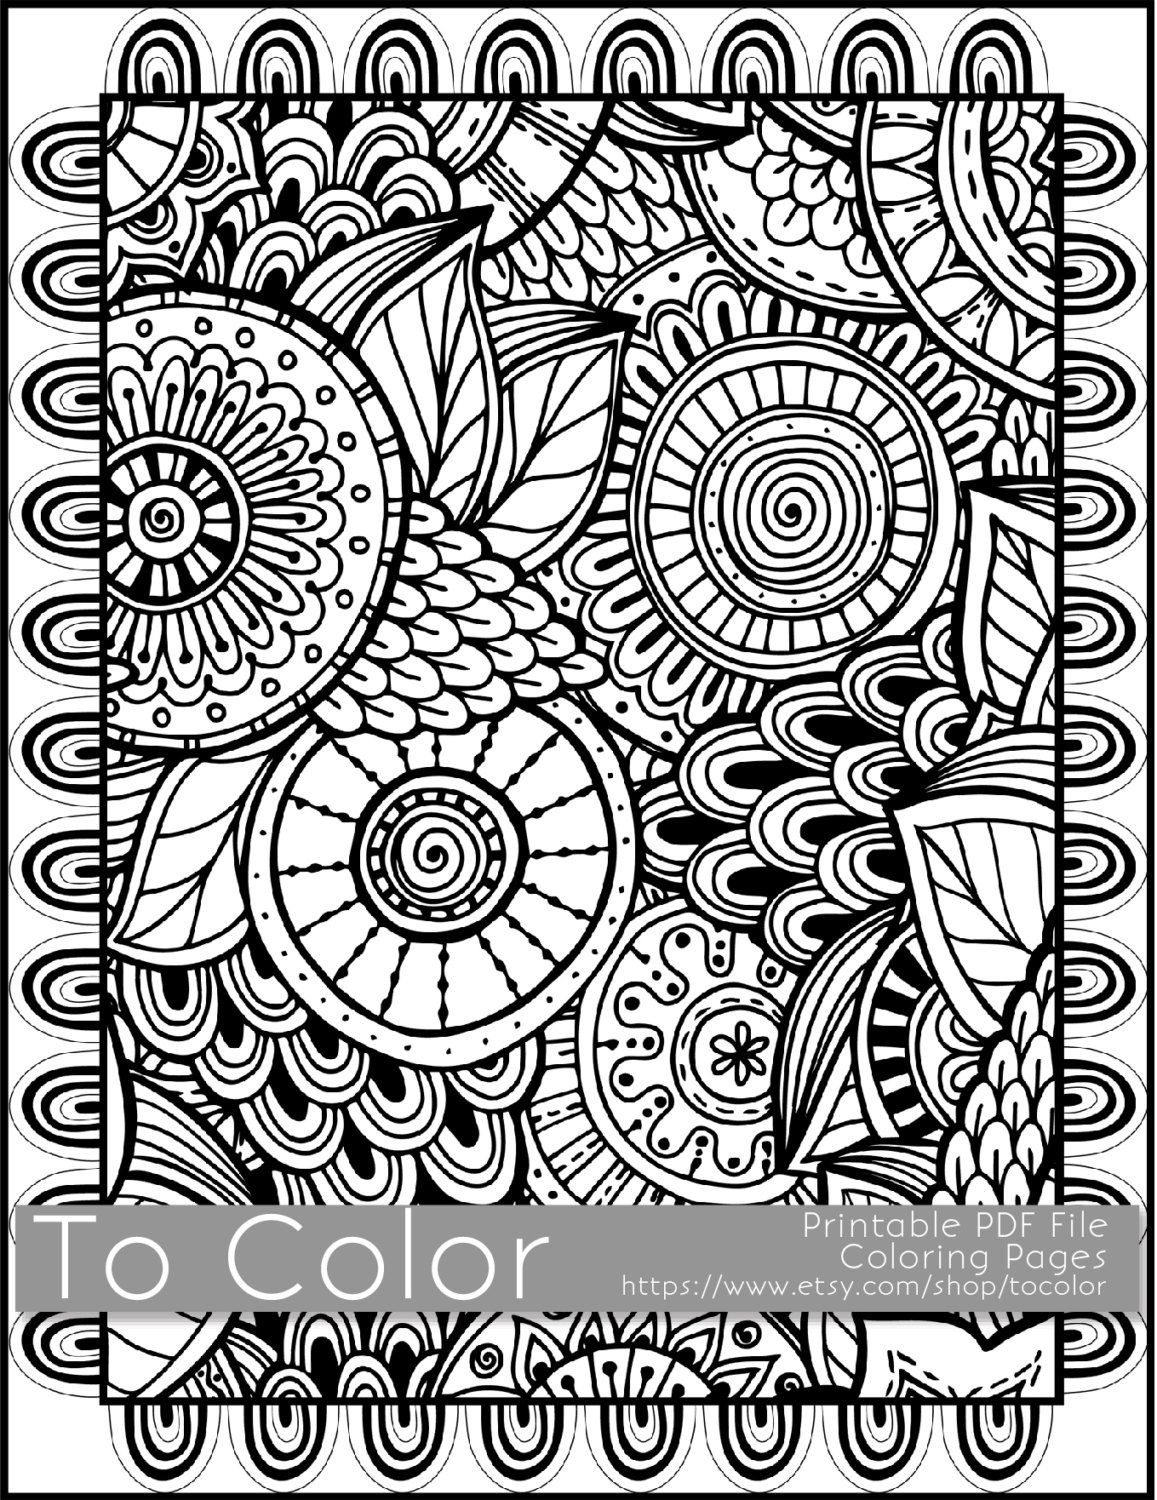 Printable Coloring Pages For Adults All Over Large Doodle Pattern Pdf Jpg Instant Download Coloring Coloring Pages Coloring Books Coloring Pages To Print